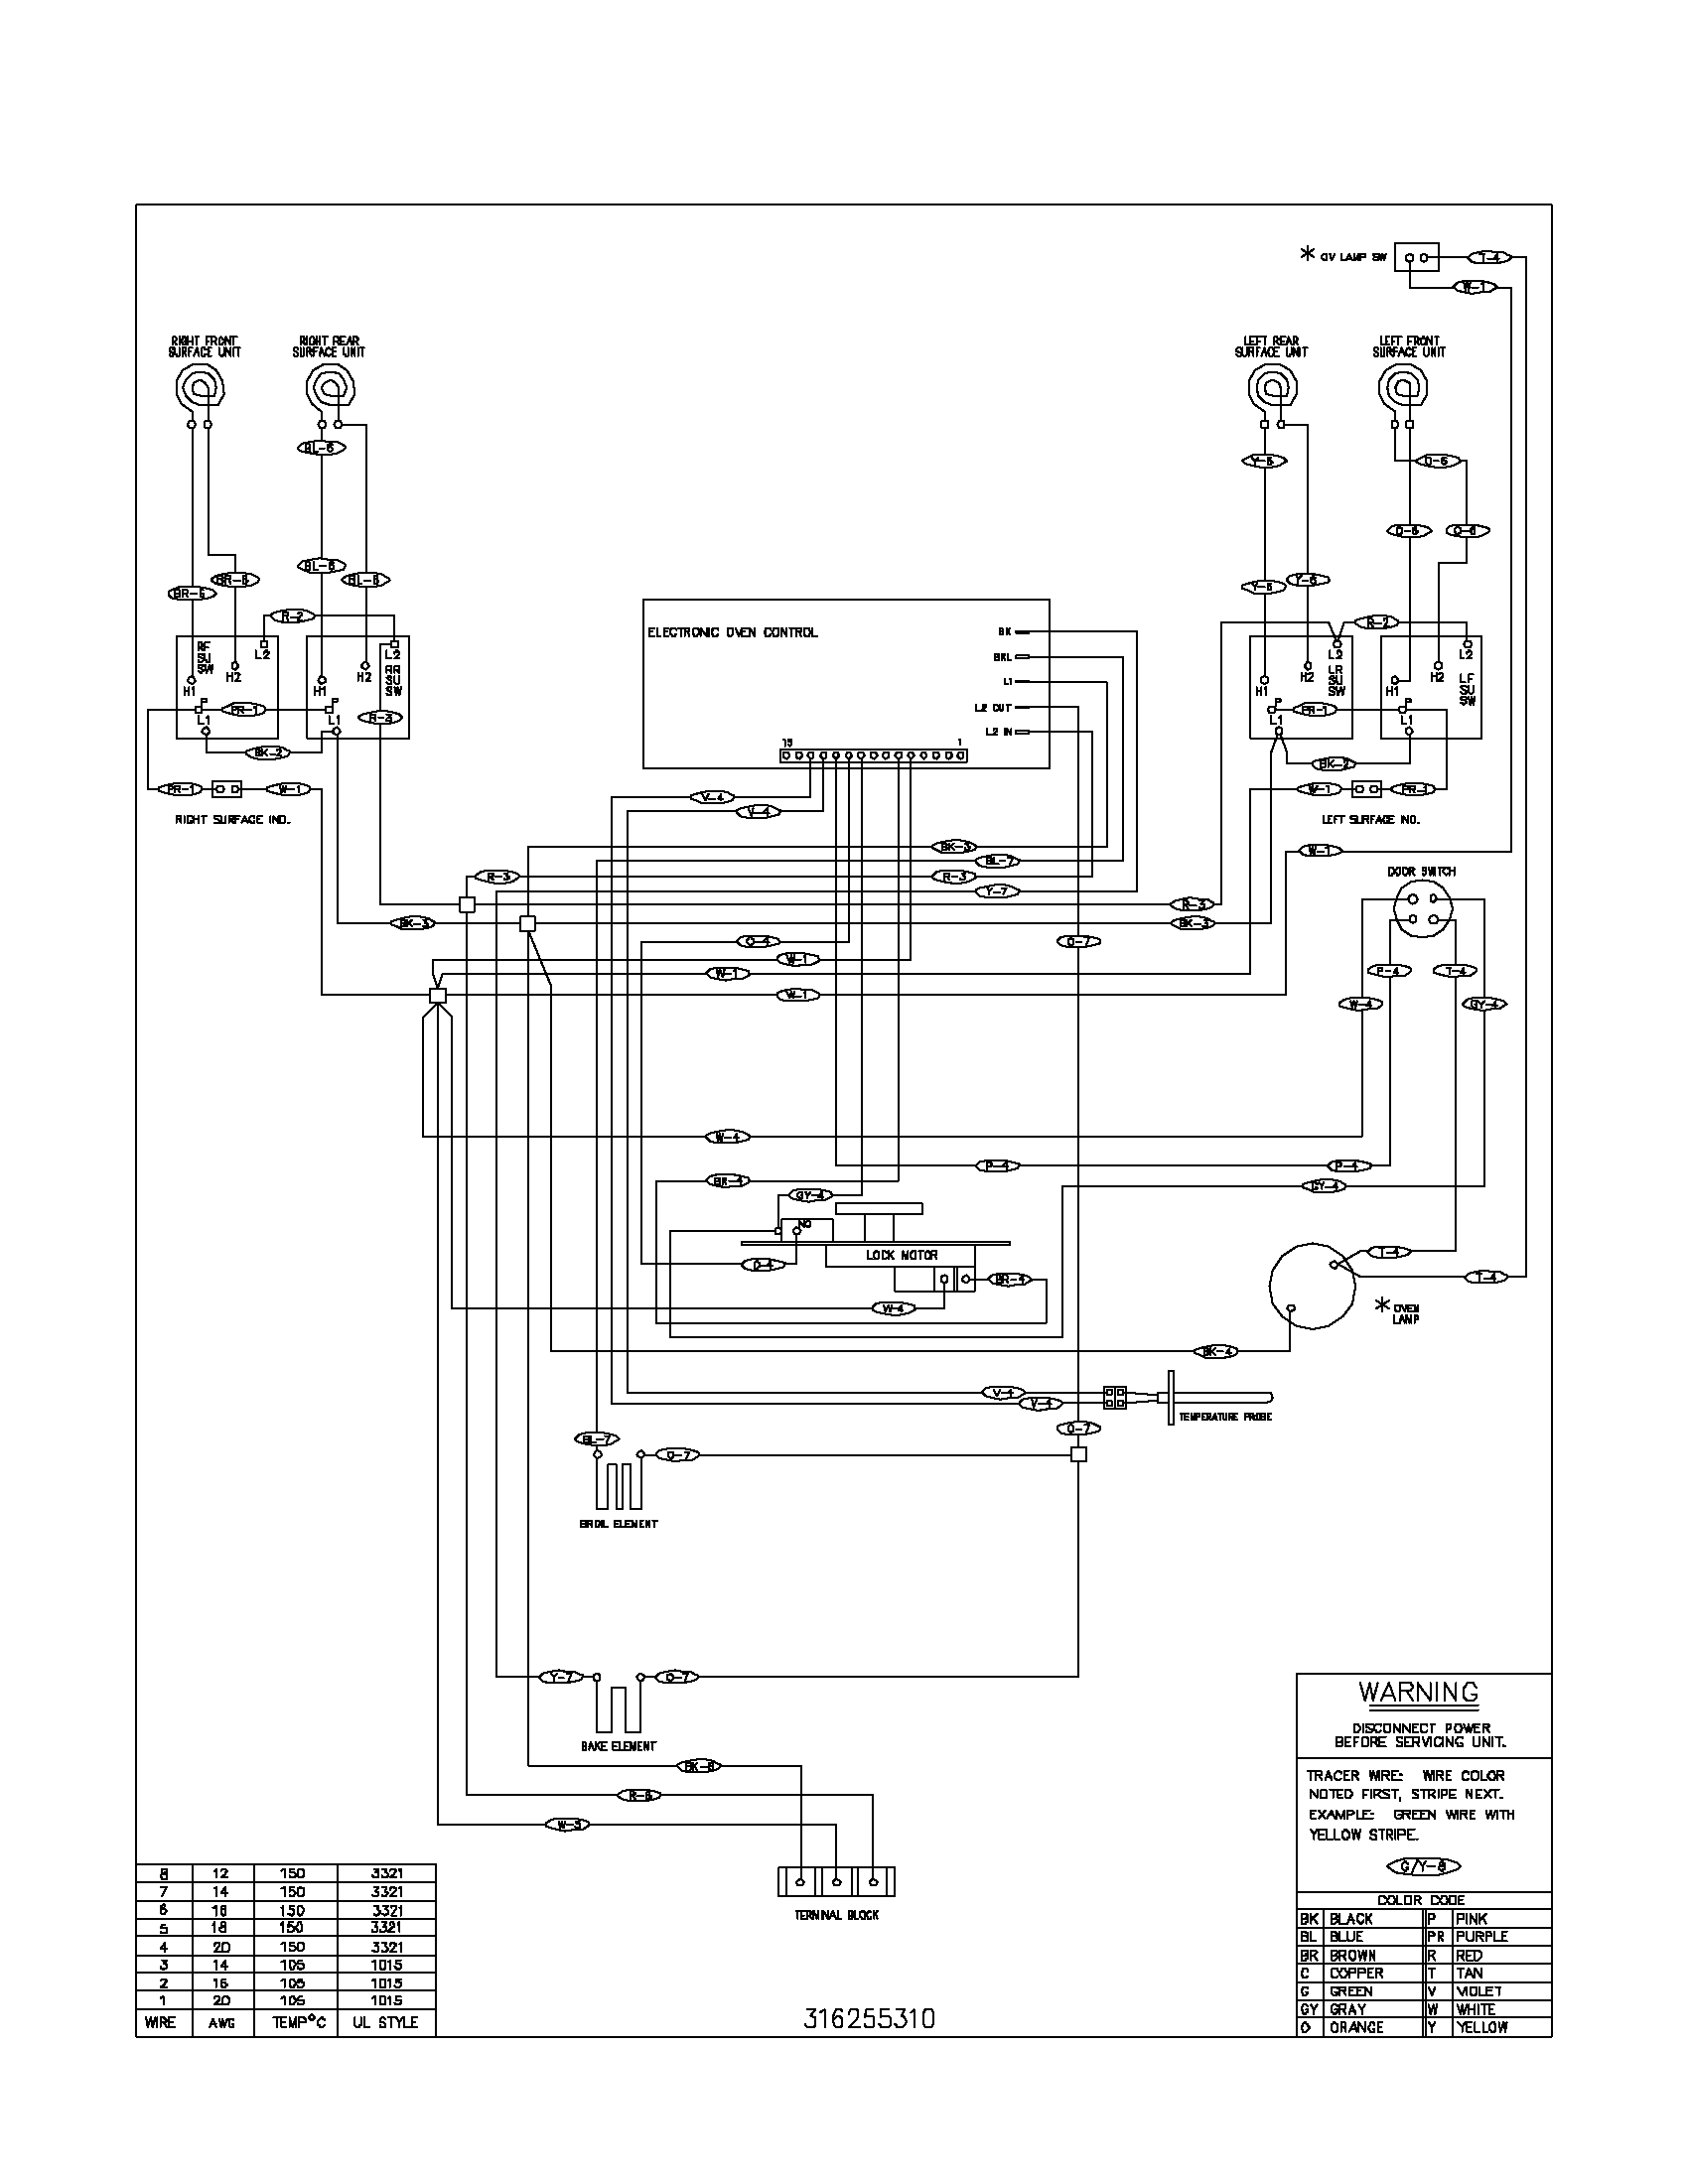 basic electrical wiring diagrams automotive frigidaire fef352asf electric range timer - stove clocks ... basic electrical wiring diagrams range